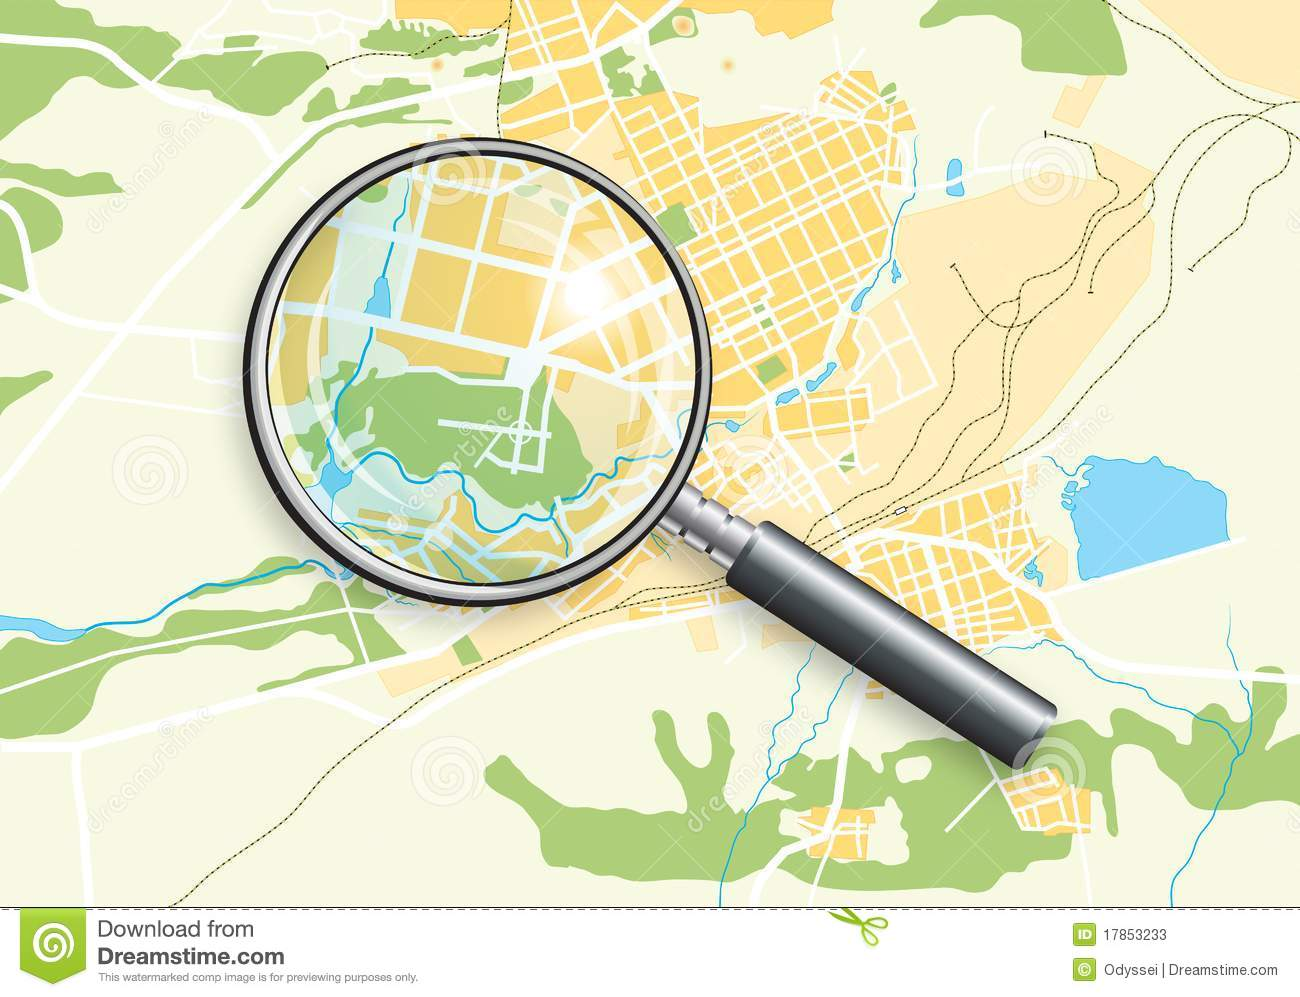 Map Zoom.City Geo Map And Zoom Lens Stock Vector Illustration Of Background